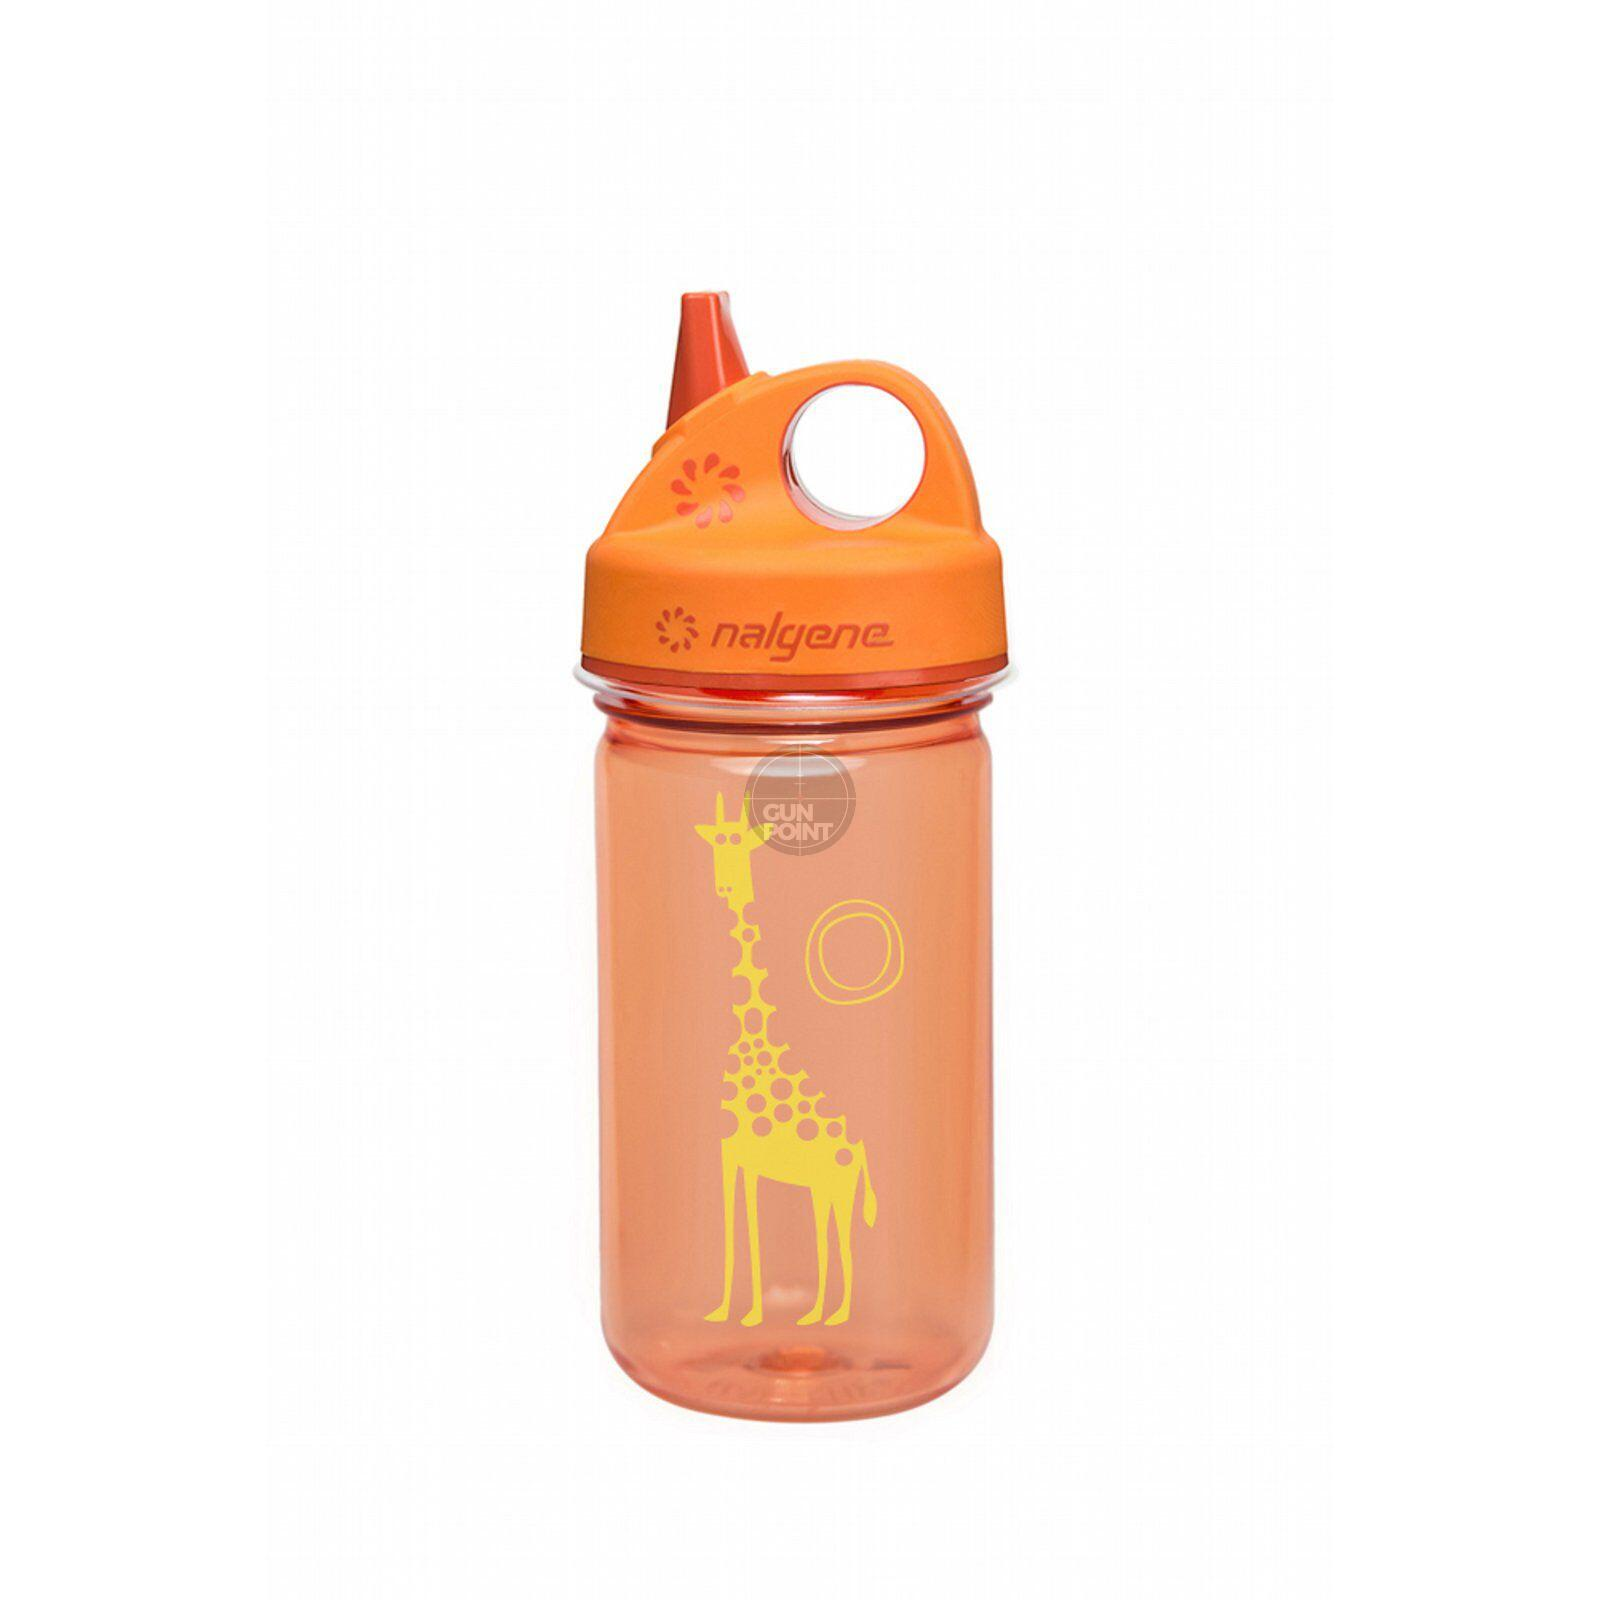 Nalgene Kinderflasche Grip-n-Gulp 0,35 L orange Giraffe